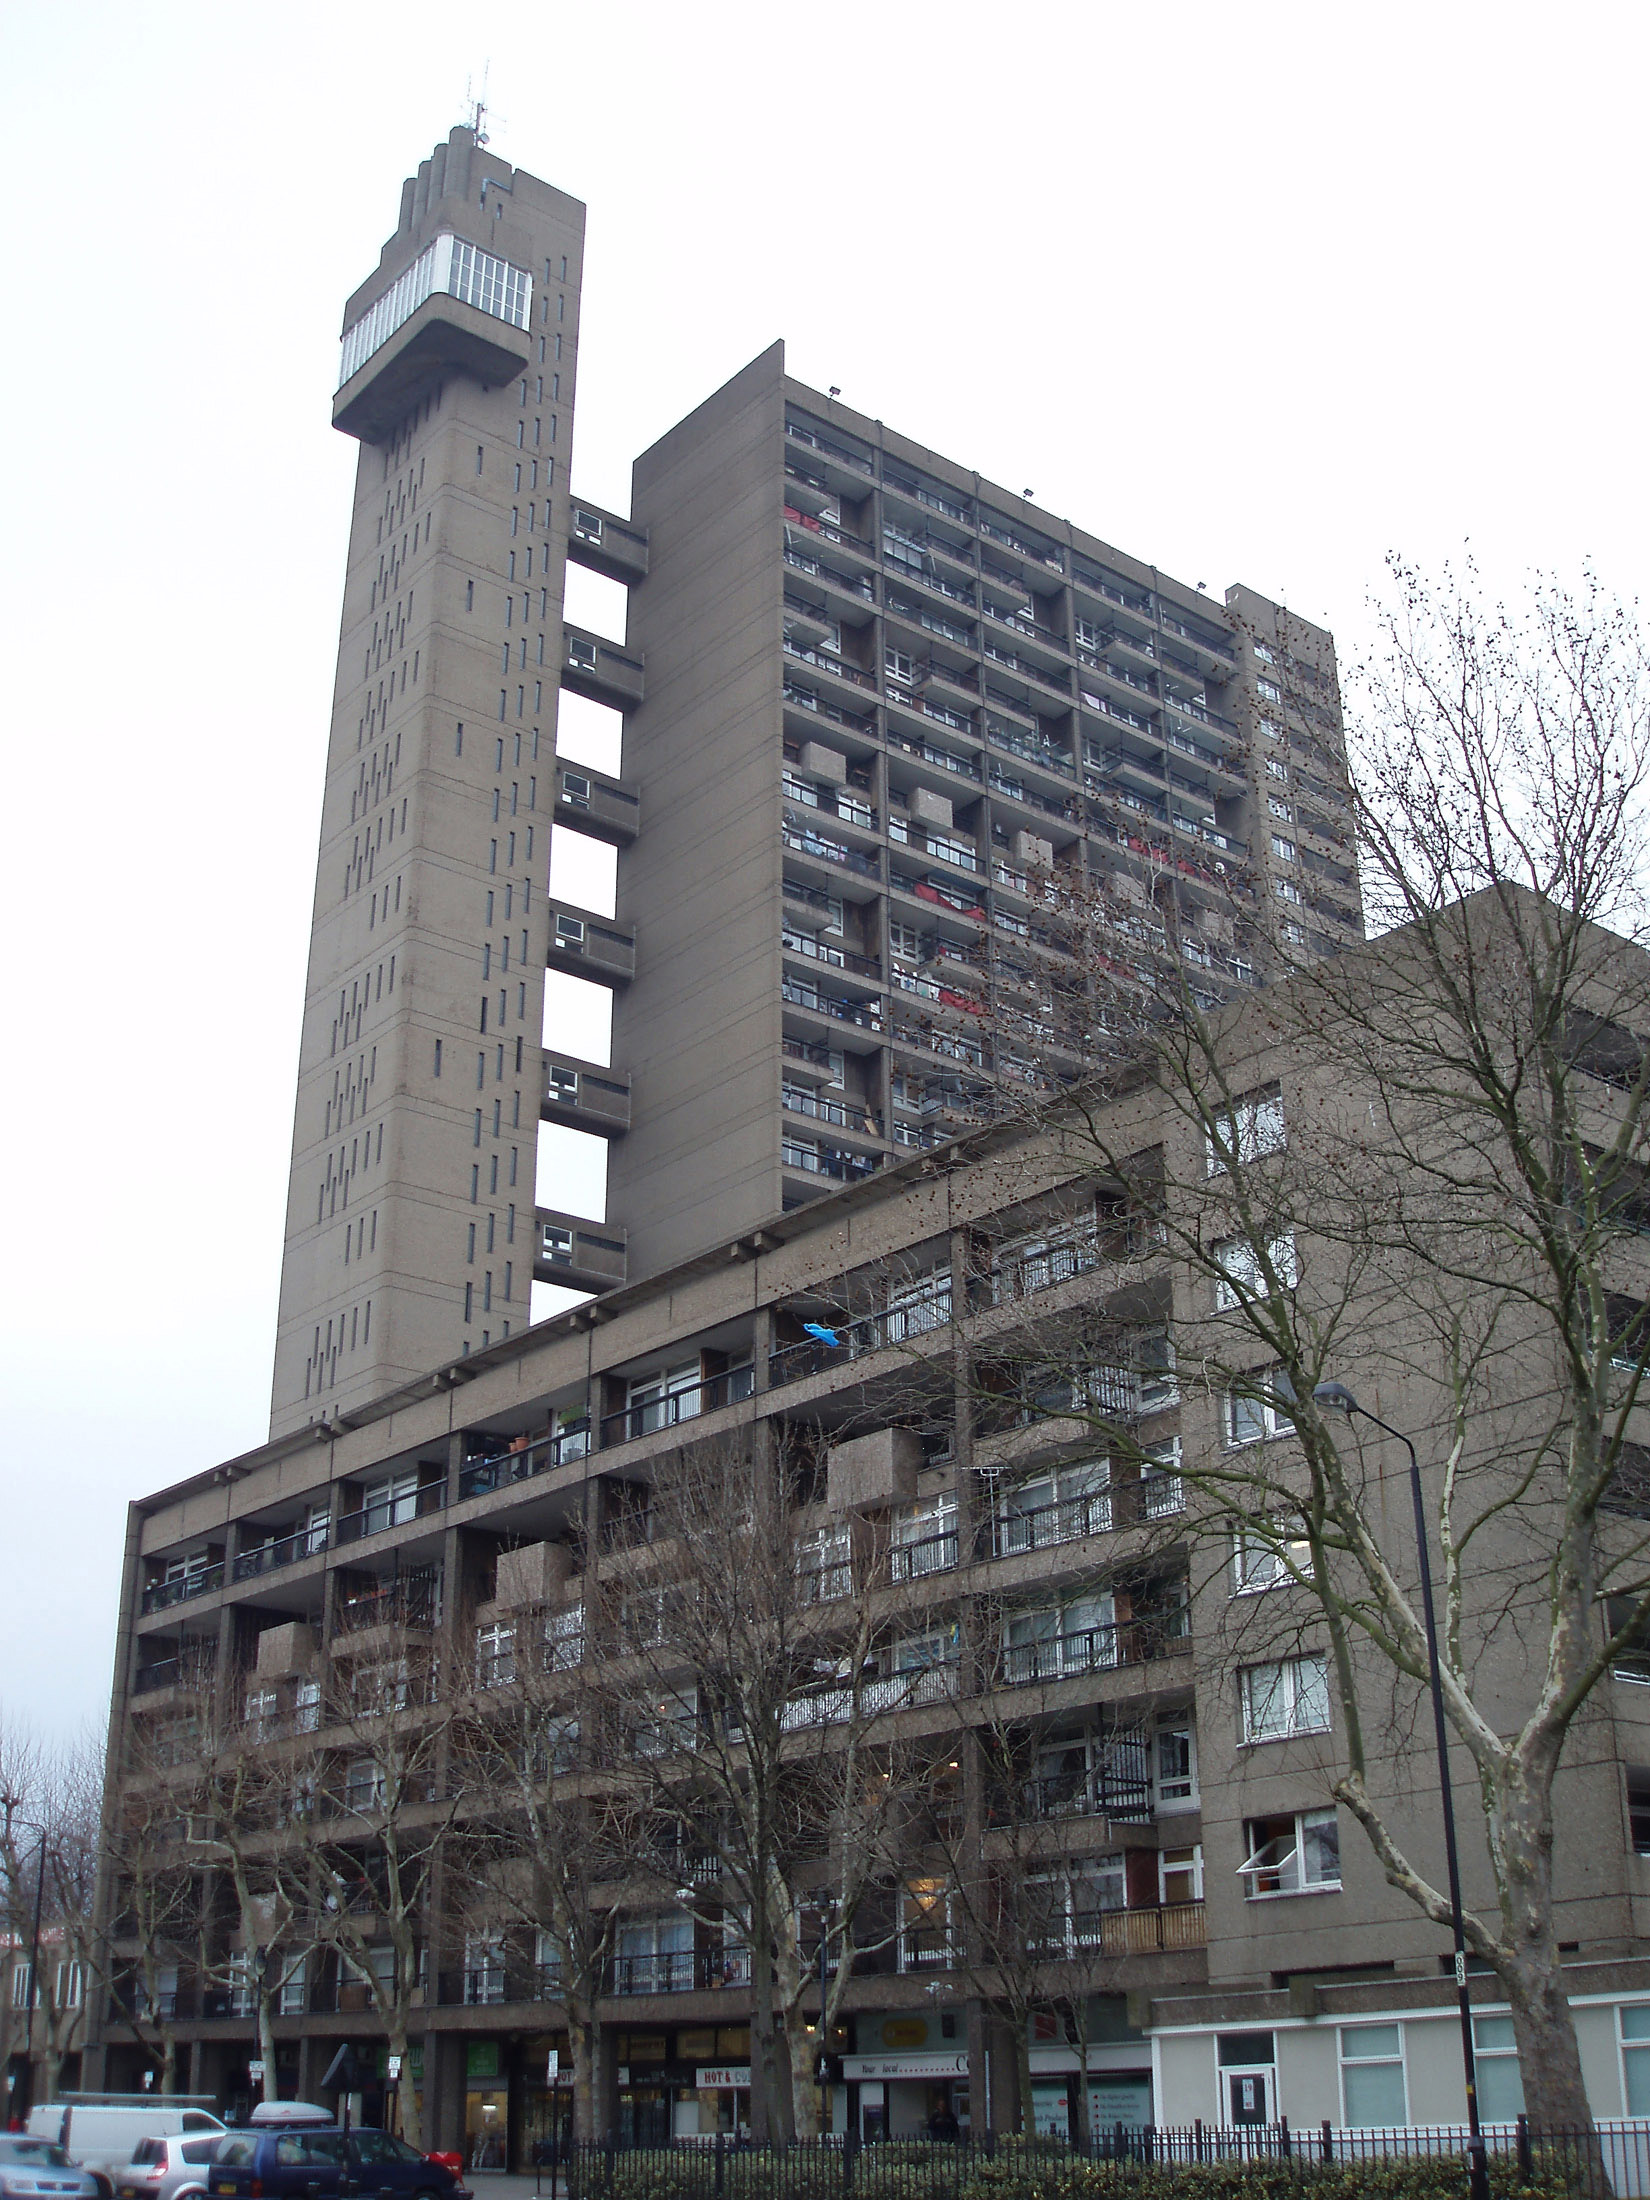 Trellick Tower Building in North Kensington, Royal Borough of Kensington and Chelsea, London, England.